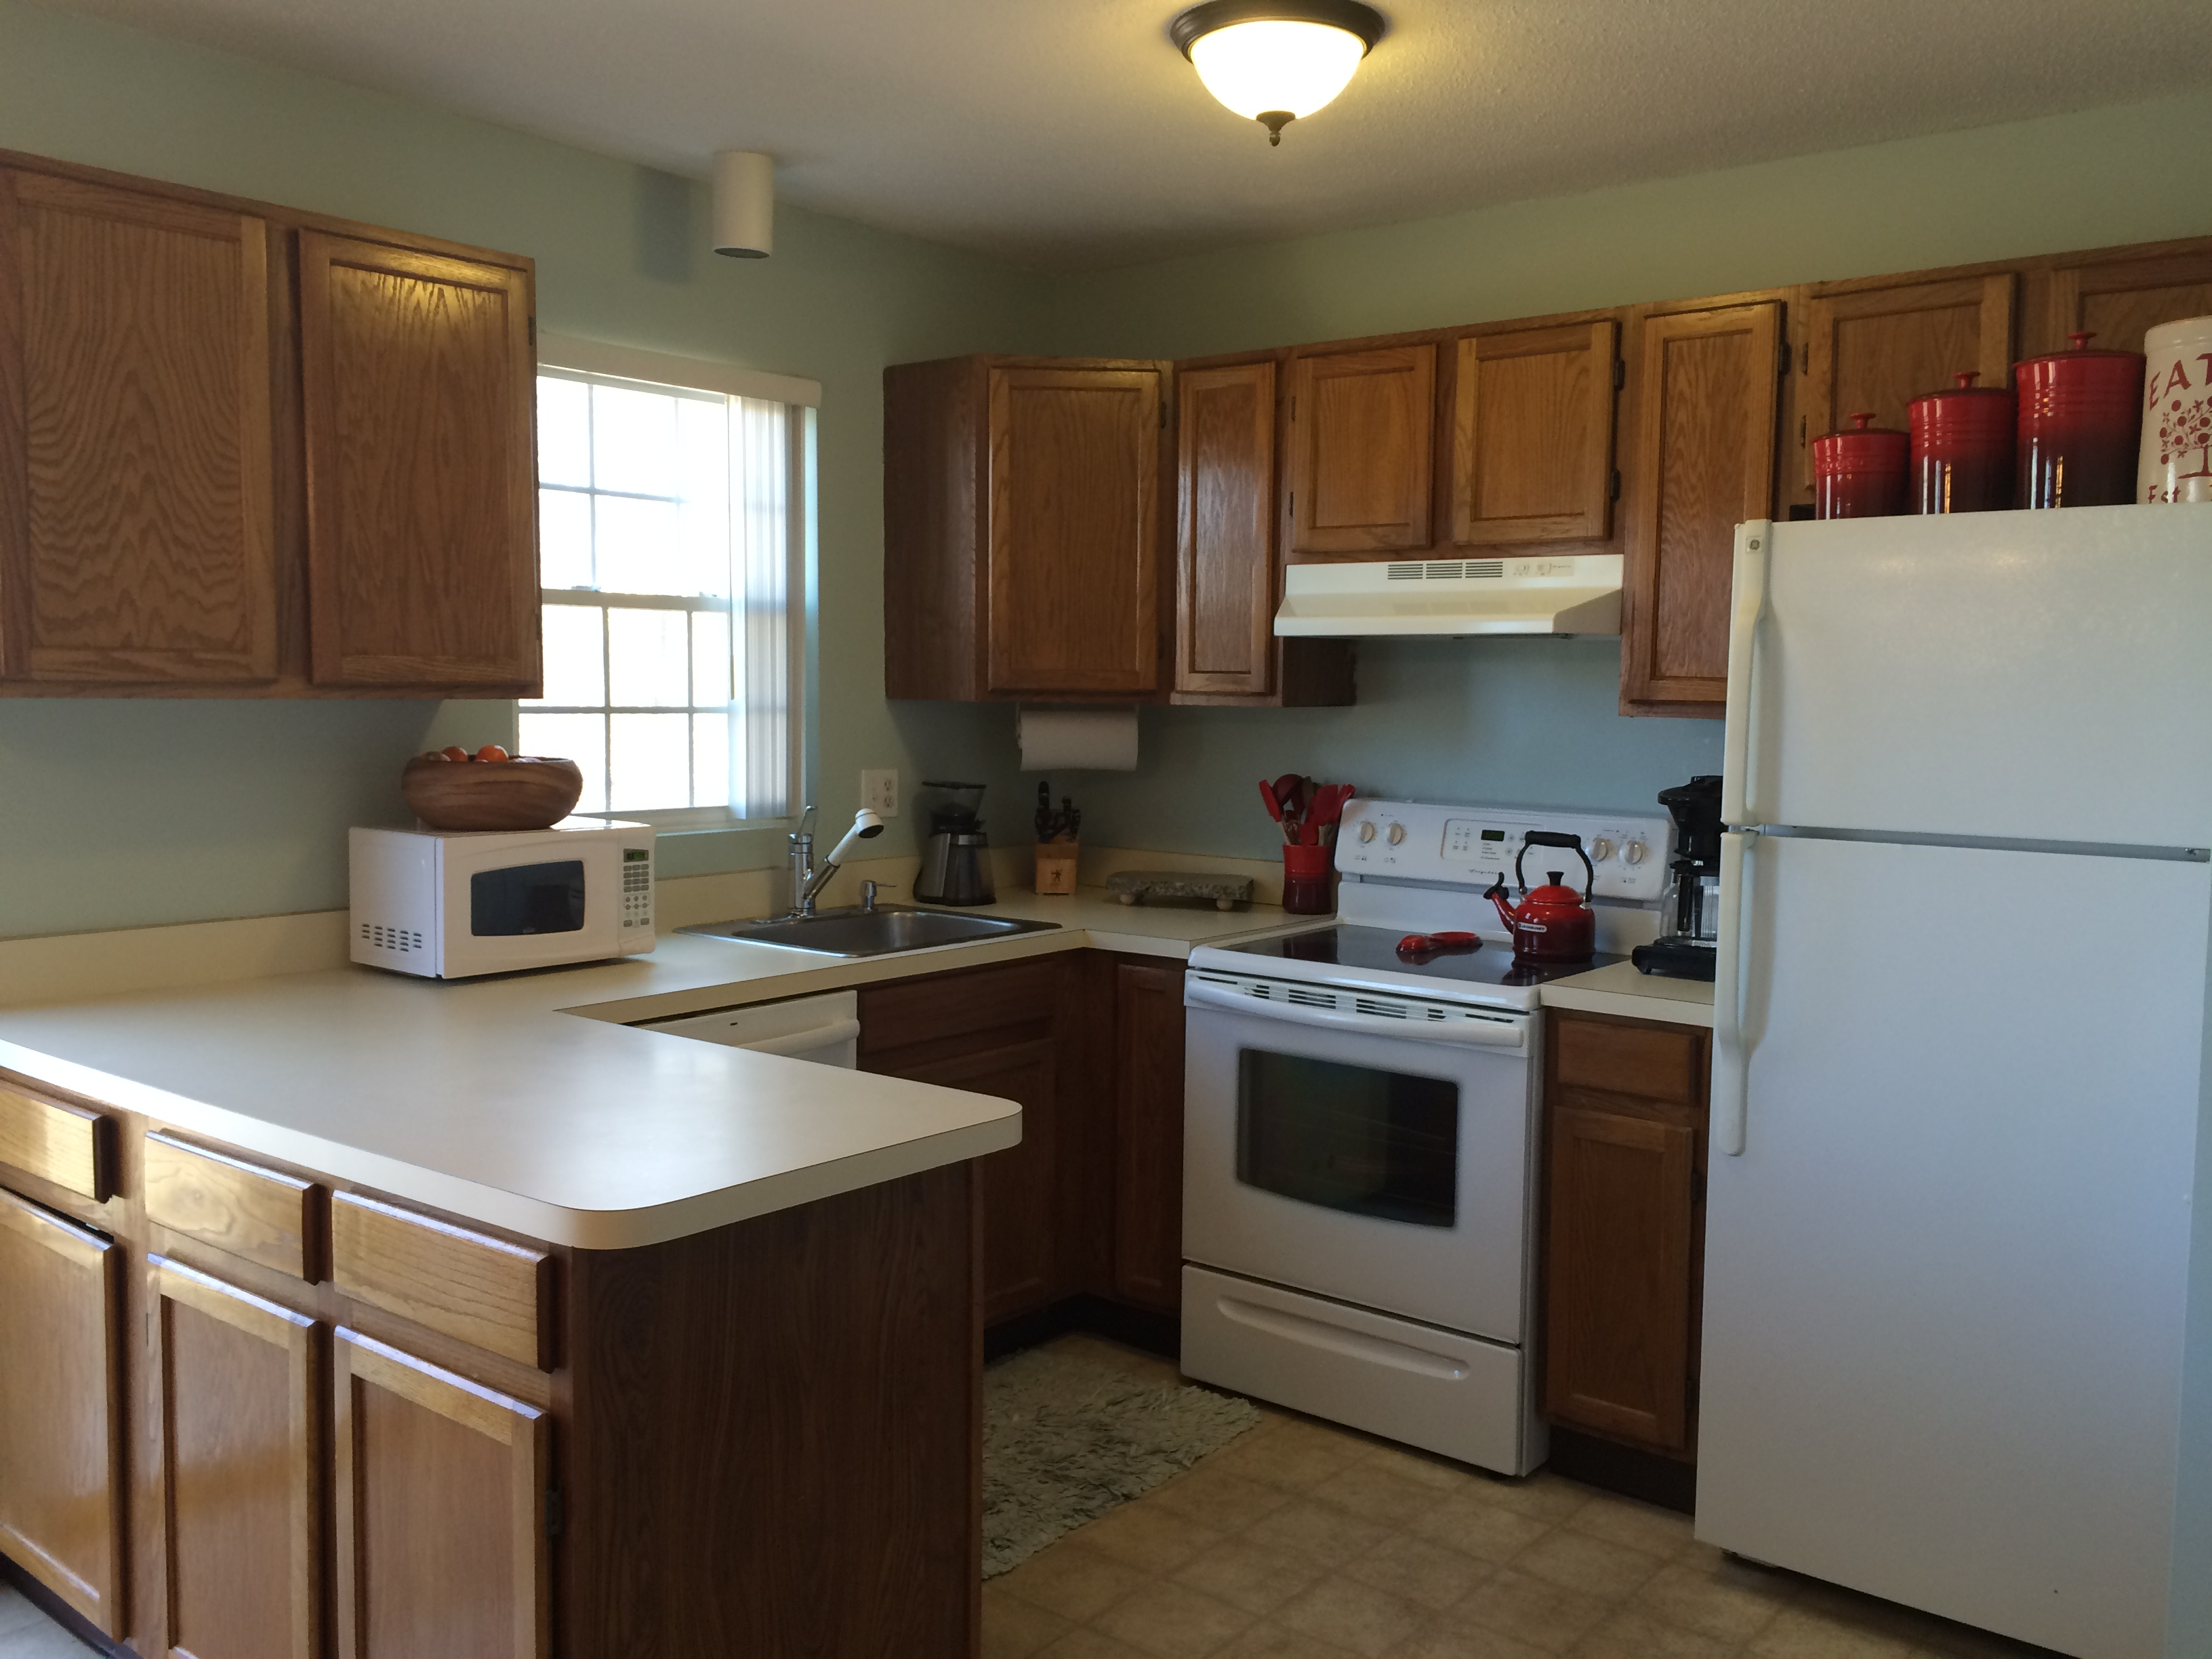 Condominium for Sale at 229 Branford Rd 229 Branford Rd 536 North Branford, Connecticut, 06471 United States